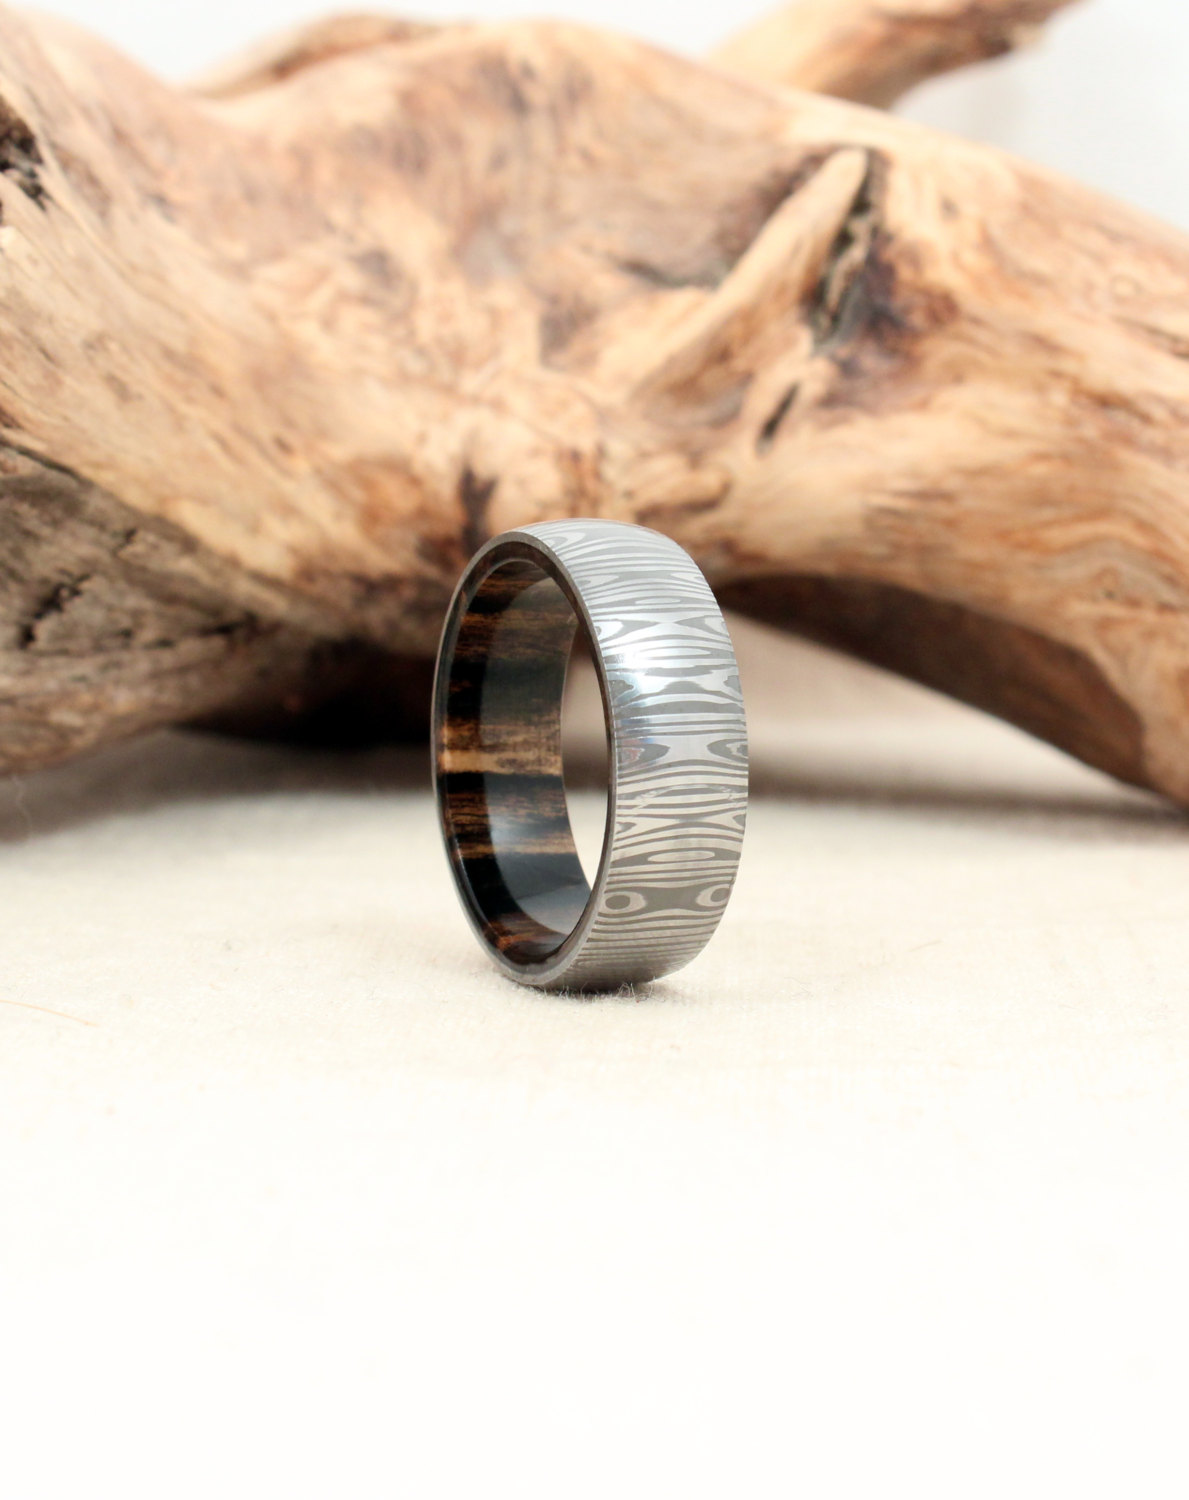 Damascus Steel and Black and White Ebony Wooden Ring